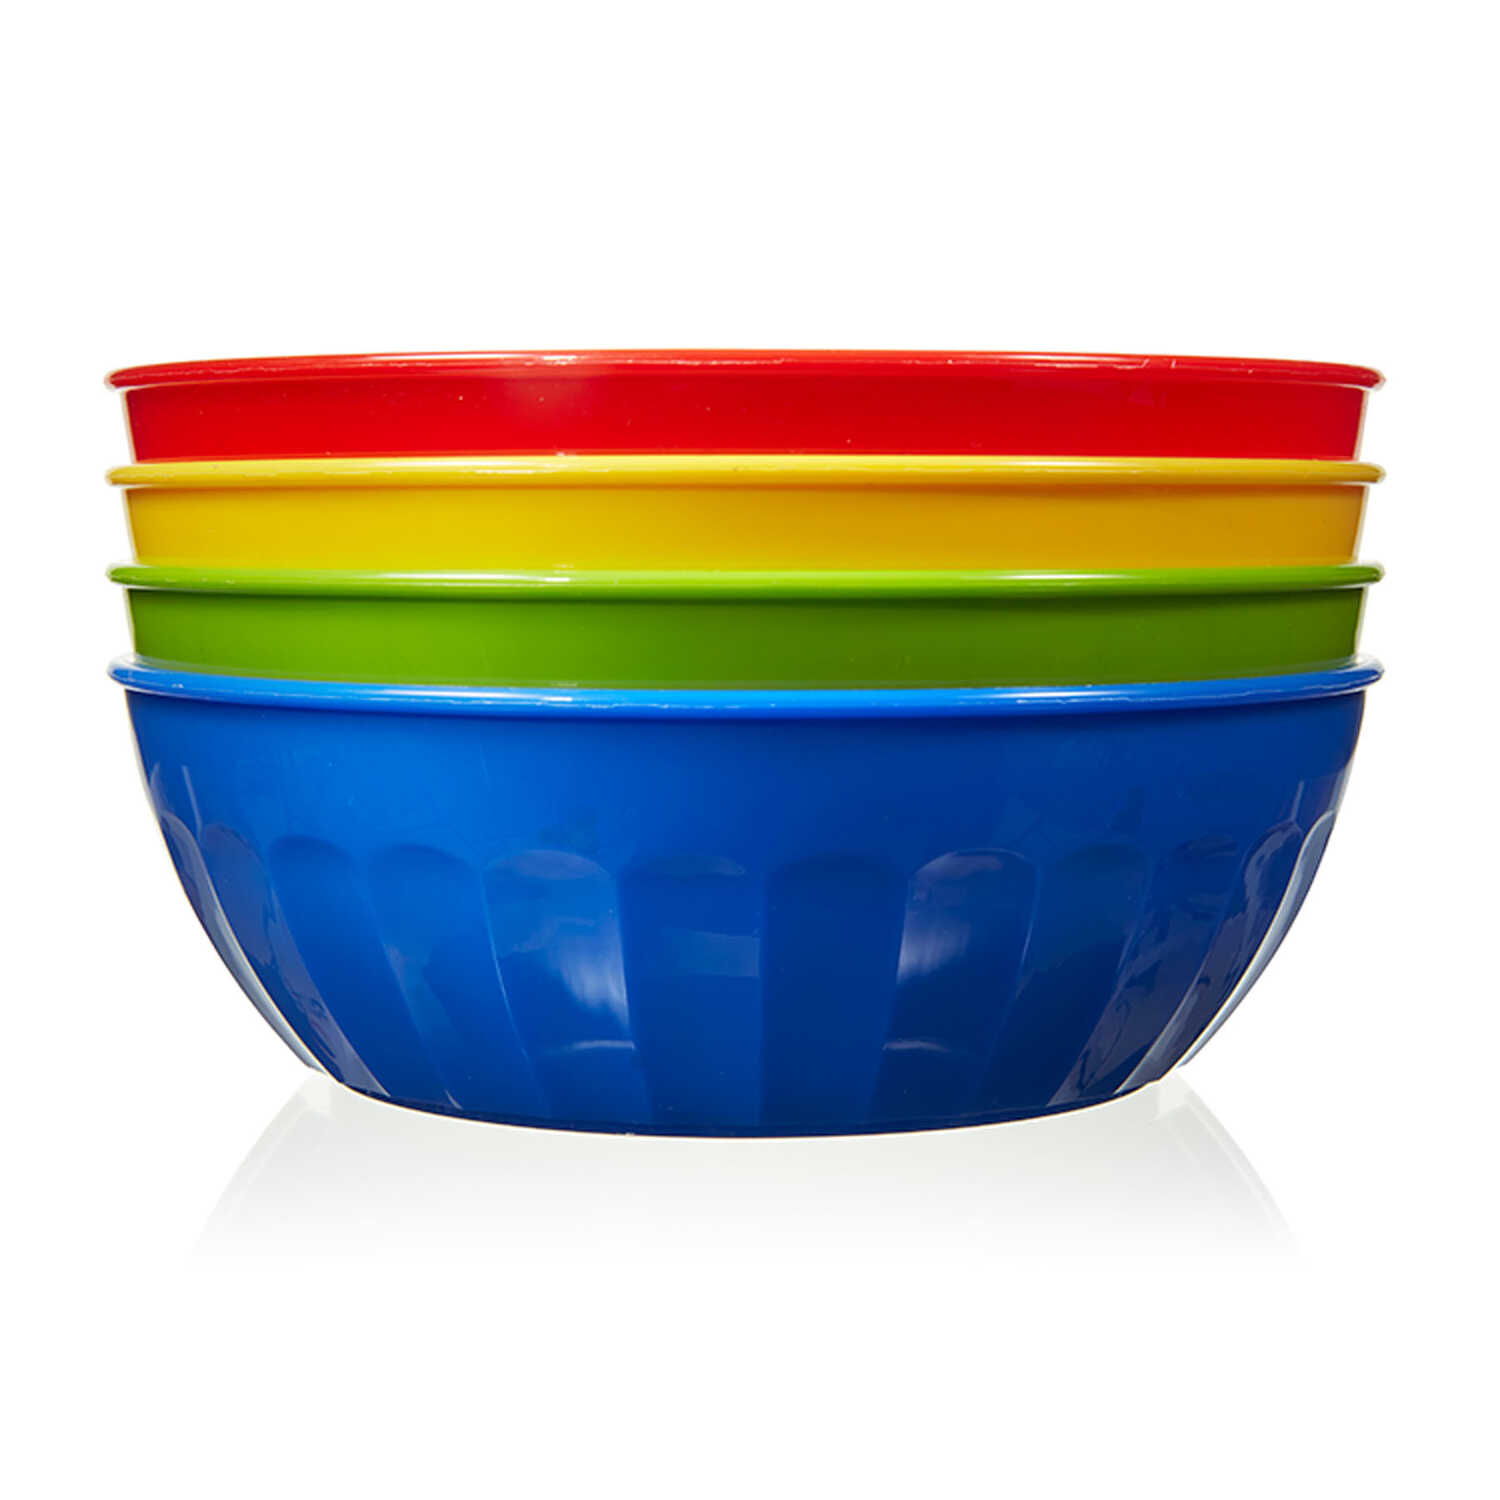 Arrow Home Products  16 oz. Assorted  Plastic  Round  Bowl  4 pk